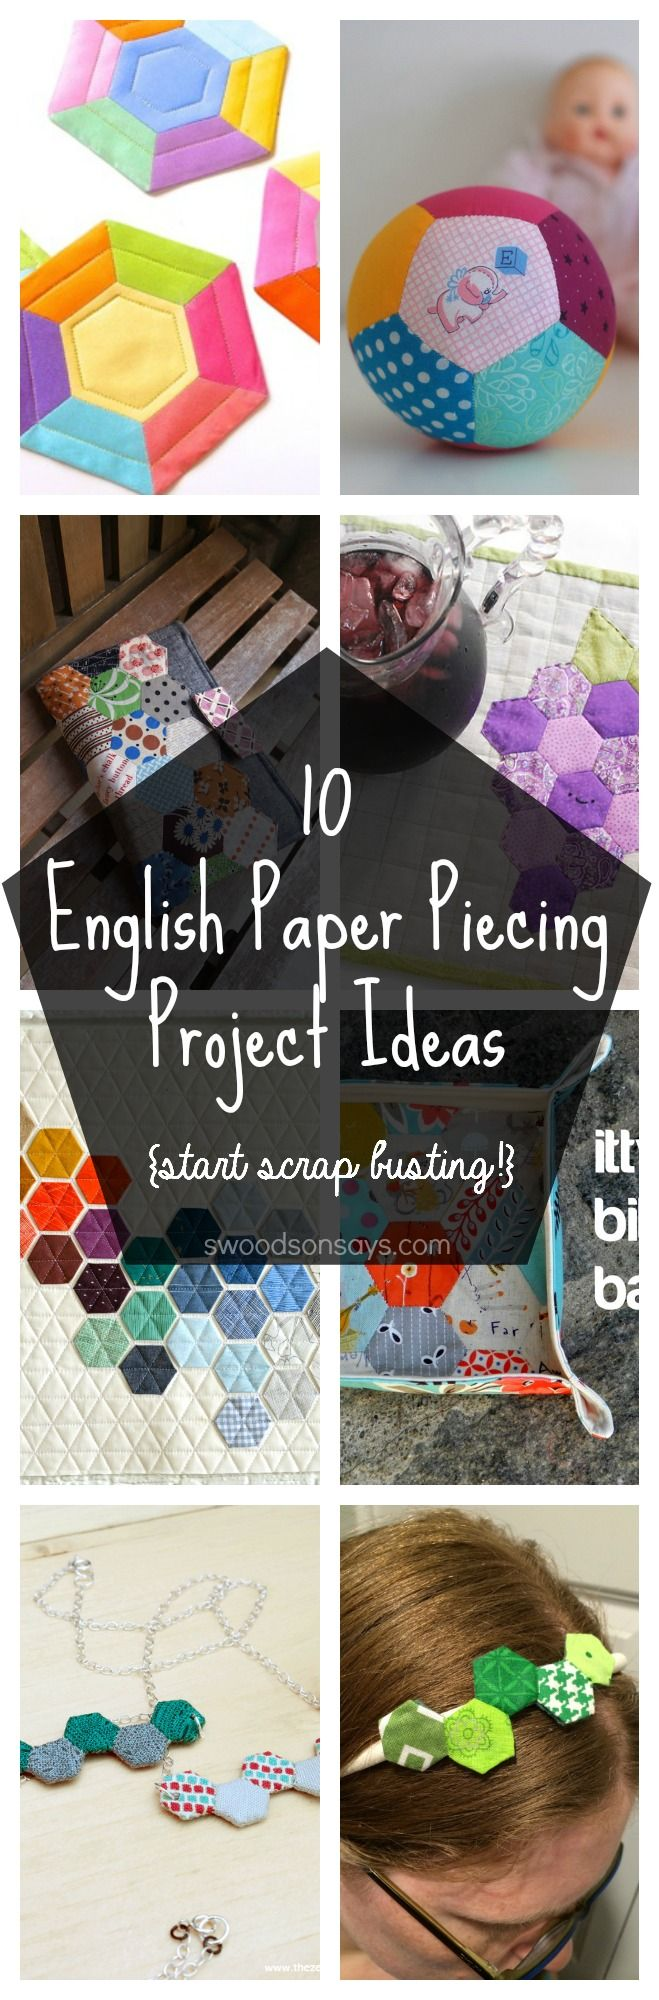 273 best hand sewing images on Pinterest | English paper piecing ...